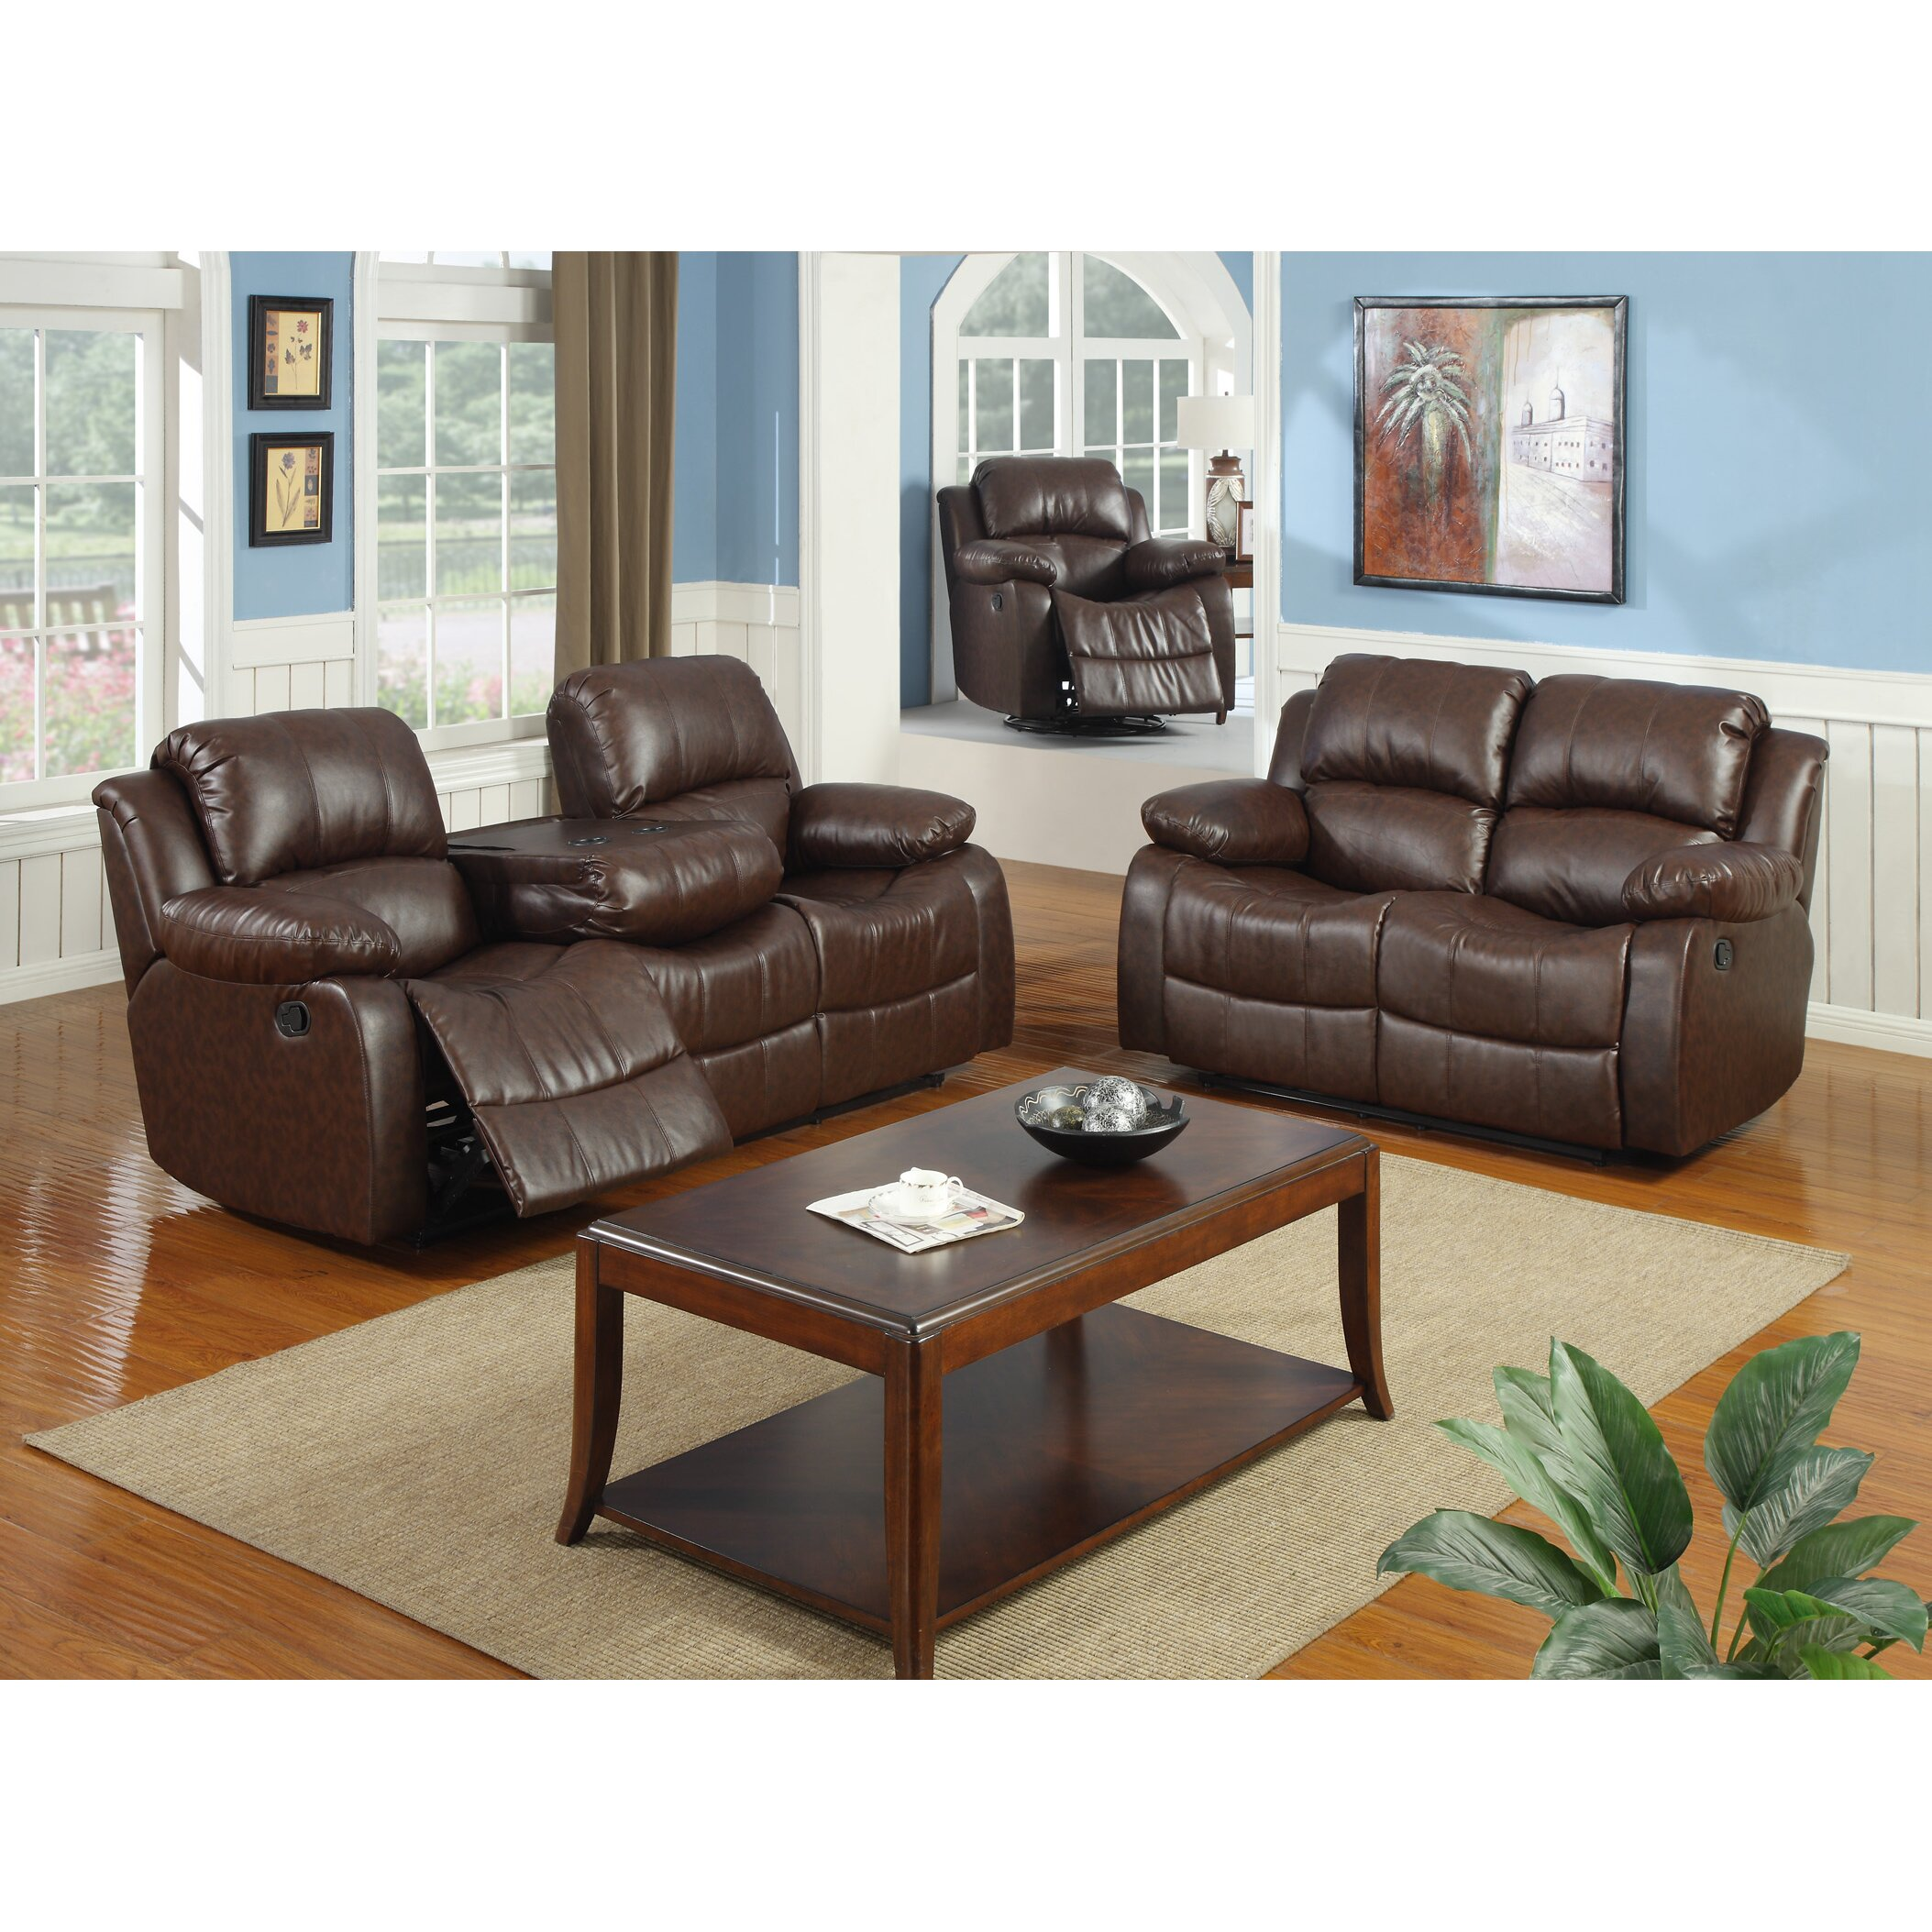 Best quality furniture bonded leather 3 piece recliner for Living room chair set